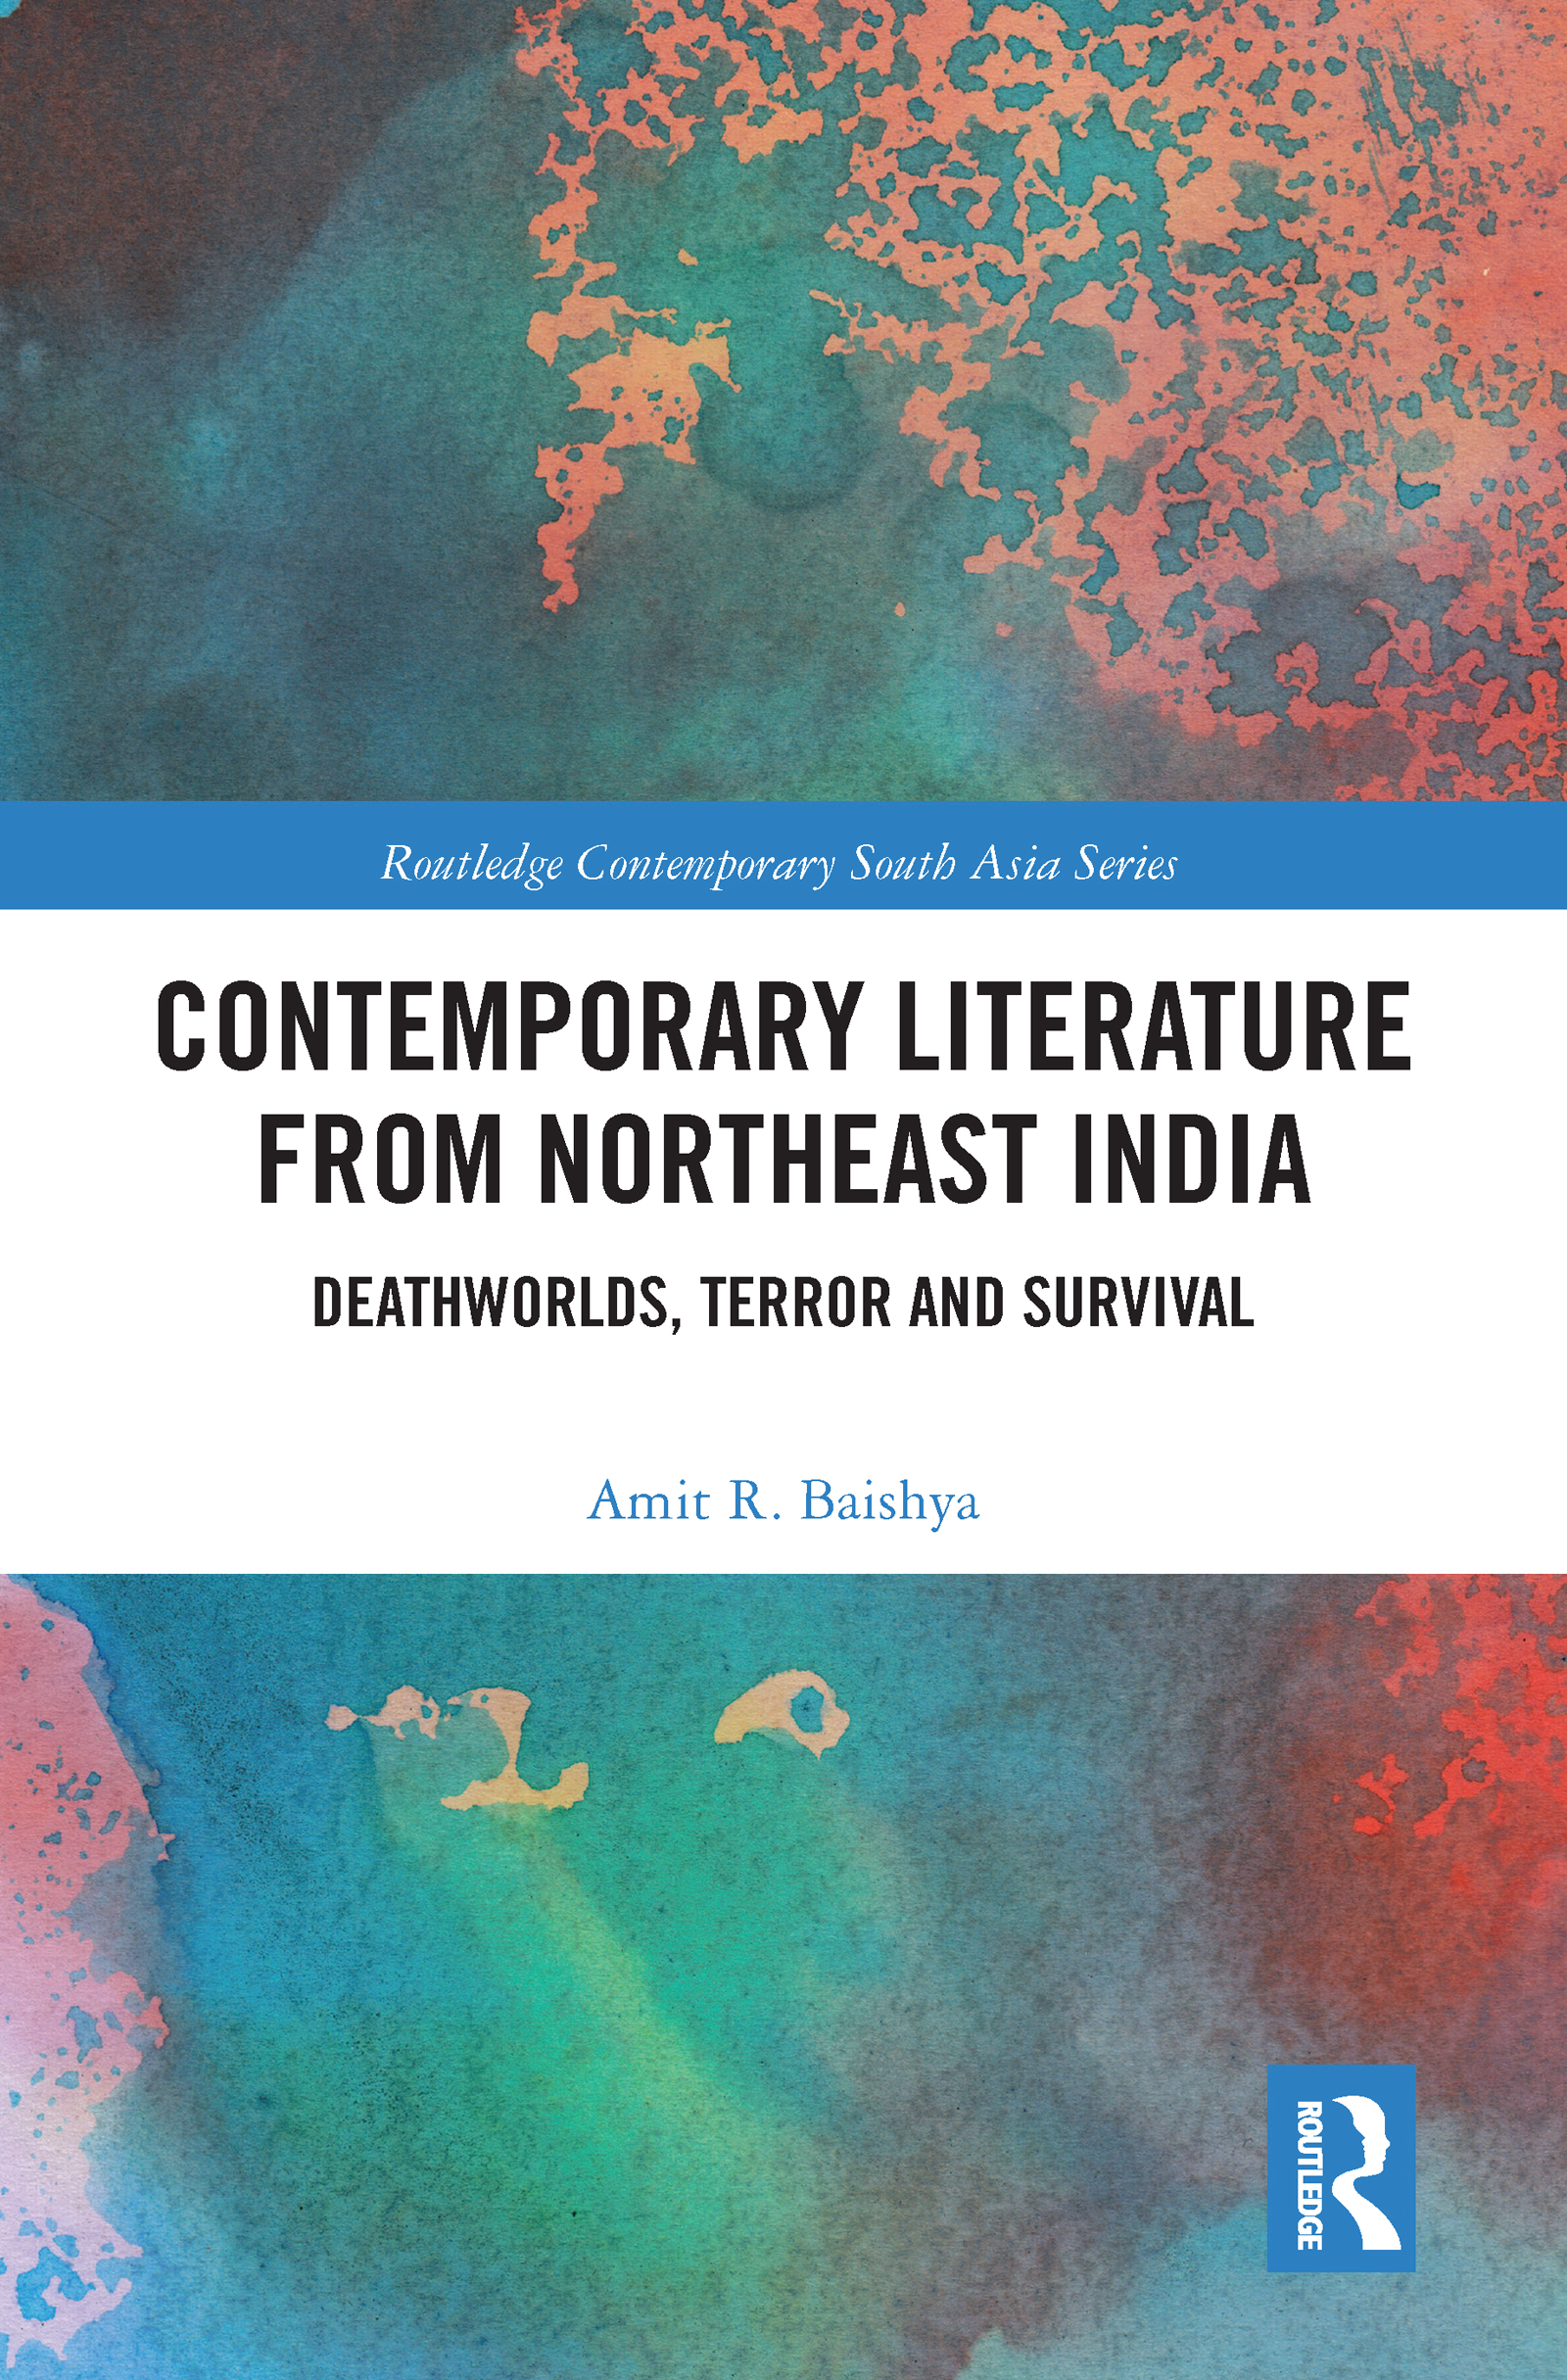 Contemporary Literature from Northeast India